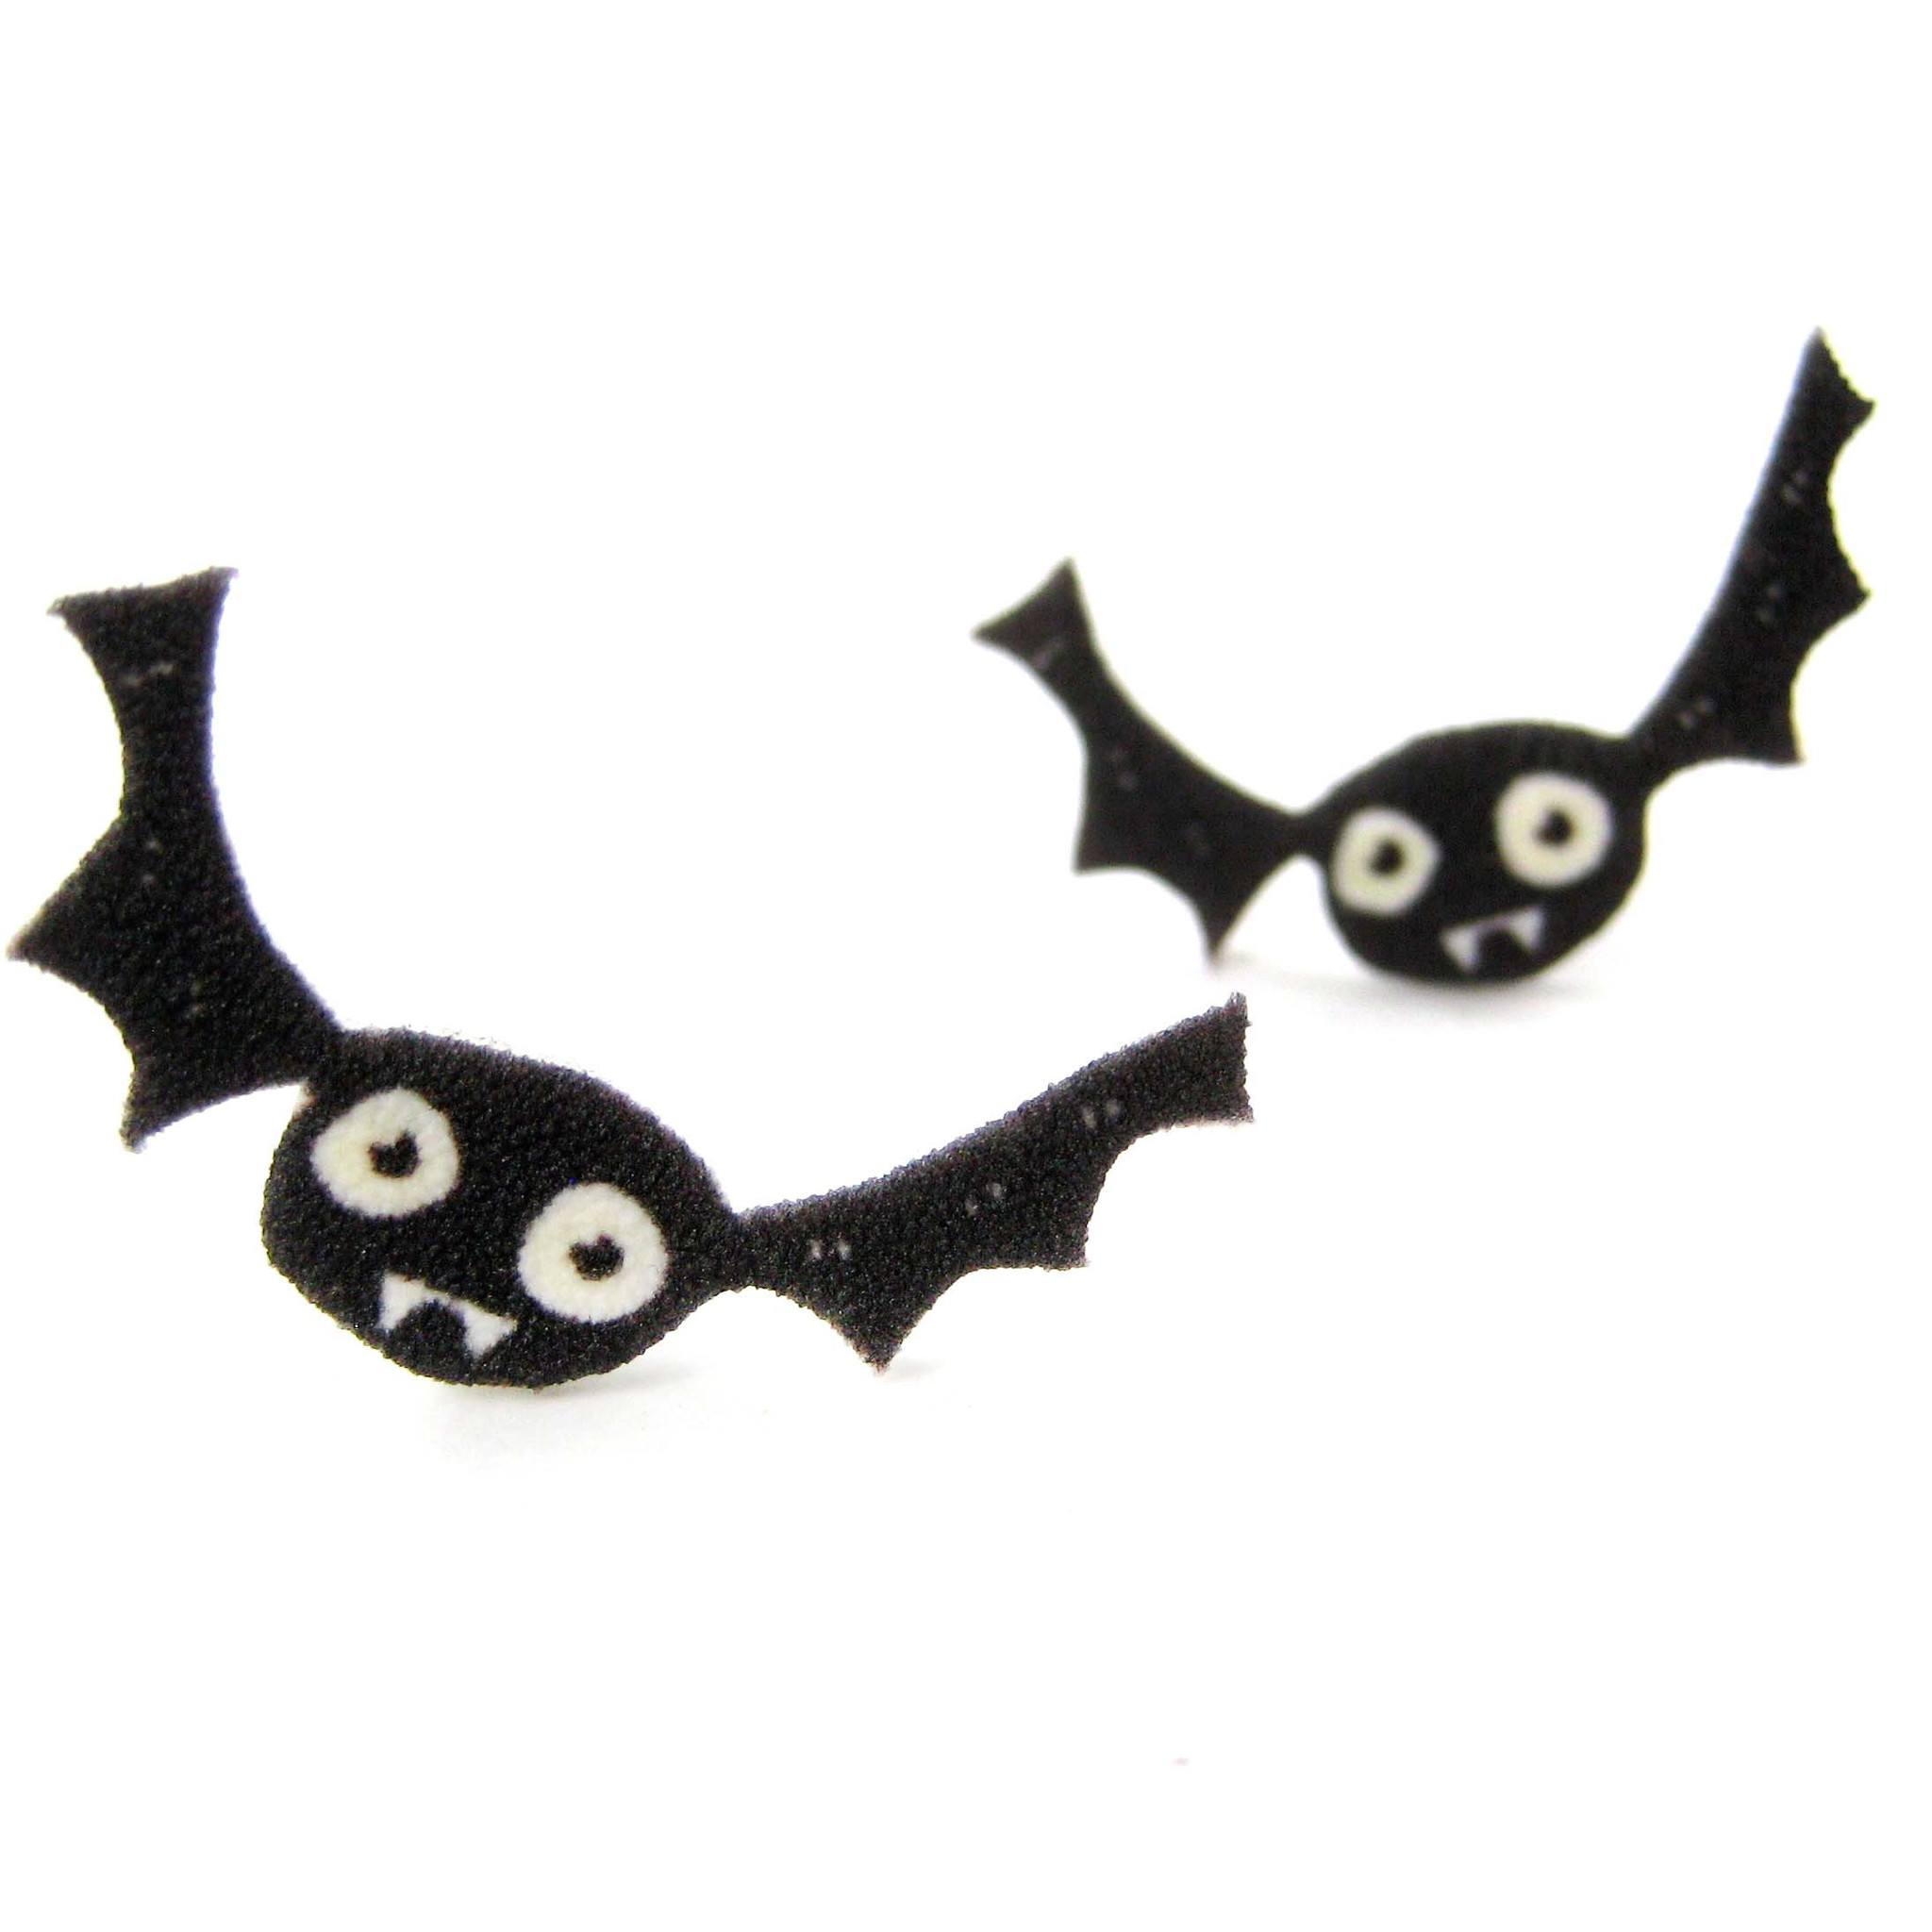 Cute Cartoon Bat Shaped Animal Hand Drawn Stud Earrings | Shrink Plastic